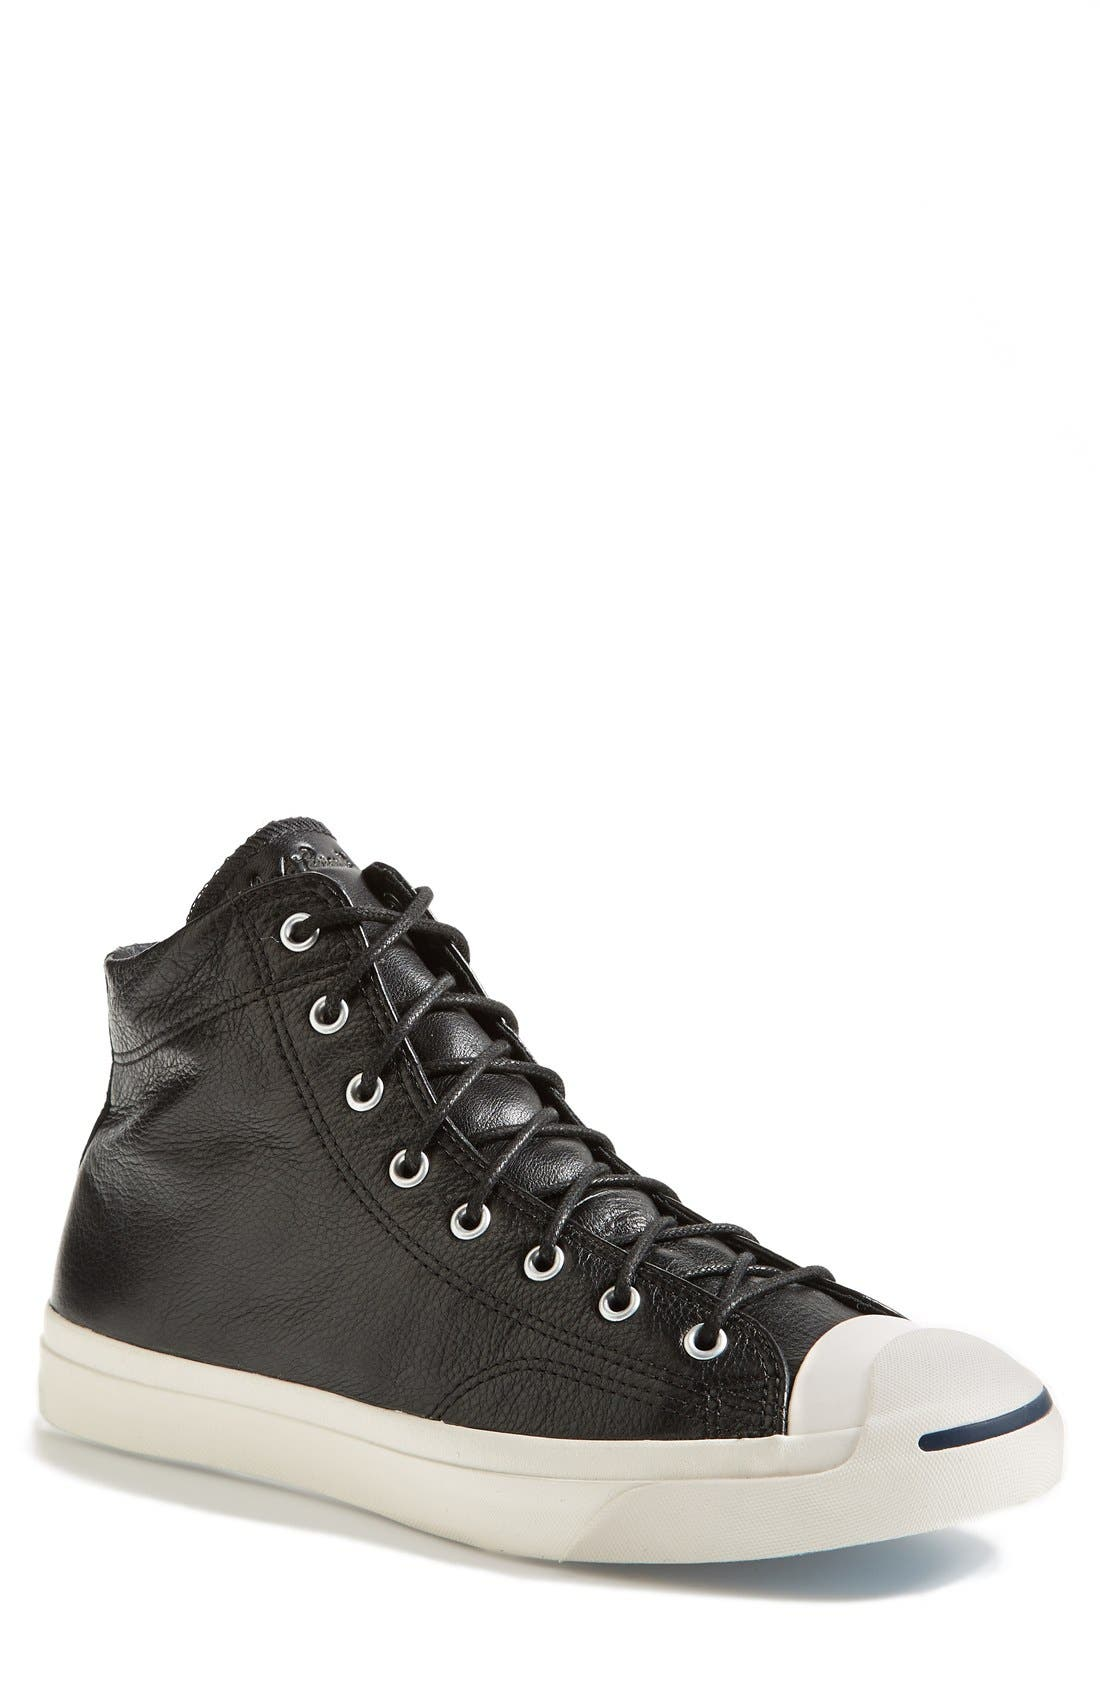 Main Image - Converse 'Jack Purcell - Jack Mid' Sneaker (Men) (Online Only)